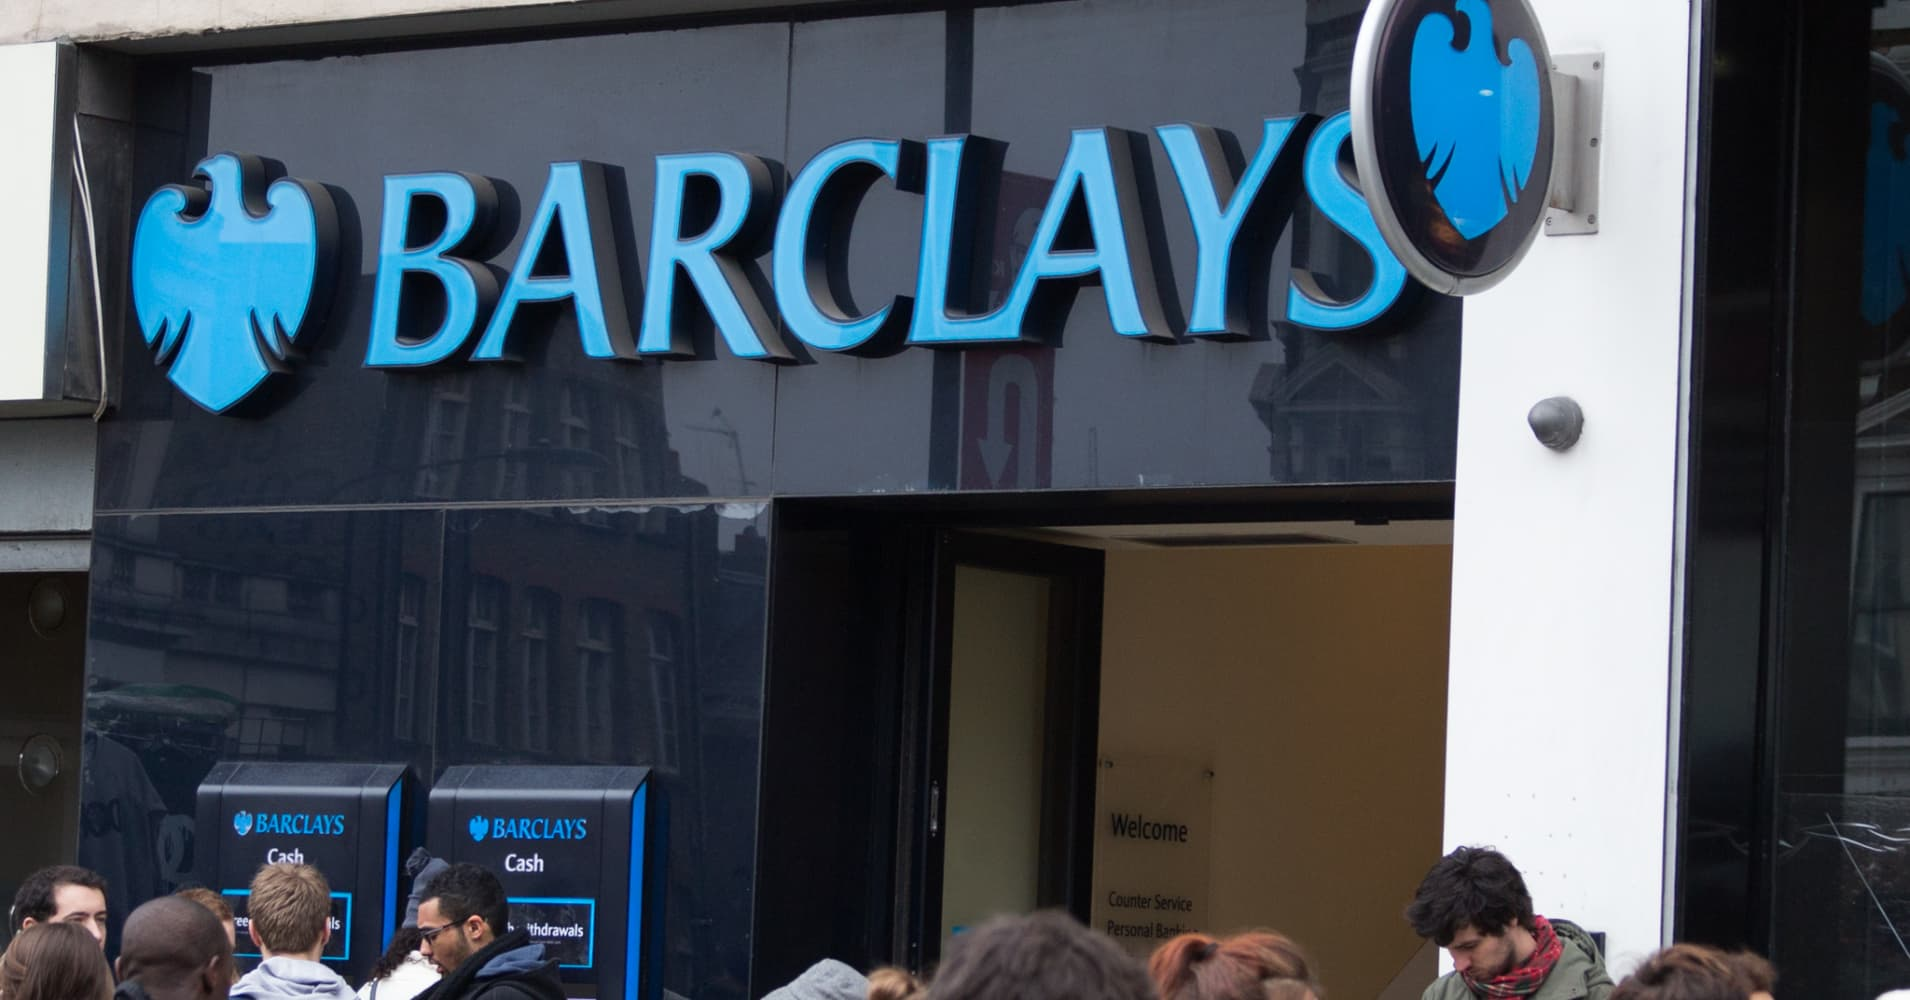 Barclays Quotes: Barclays Thinks Artificial Intelligence Is The Future Of